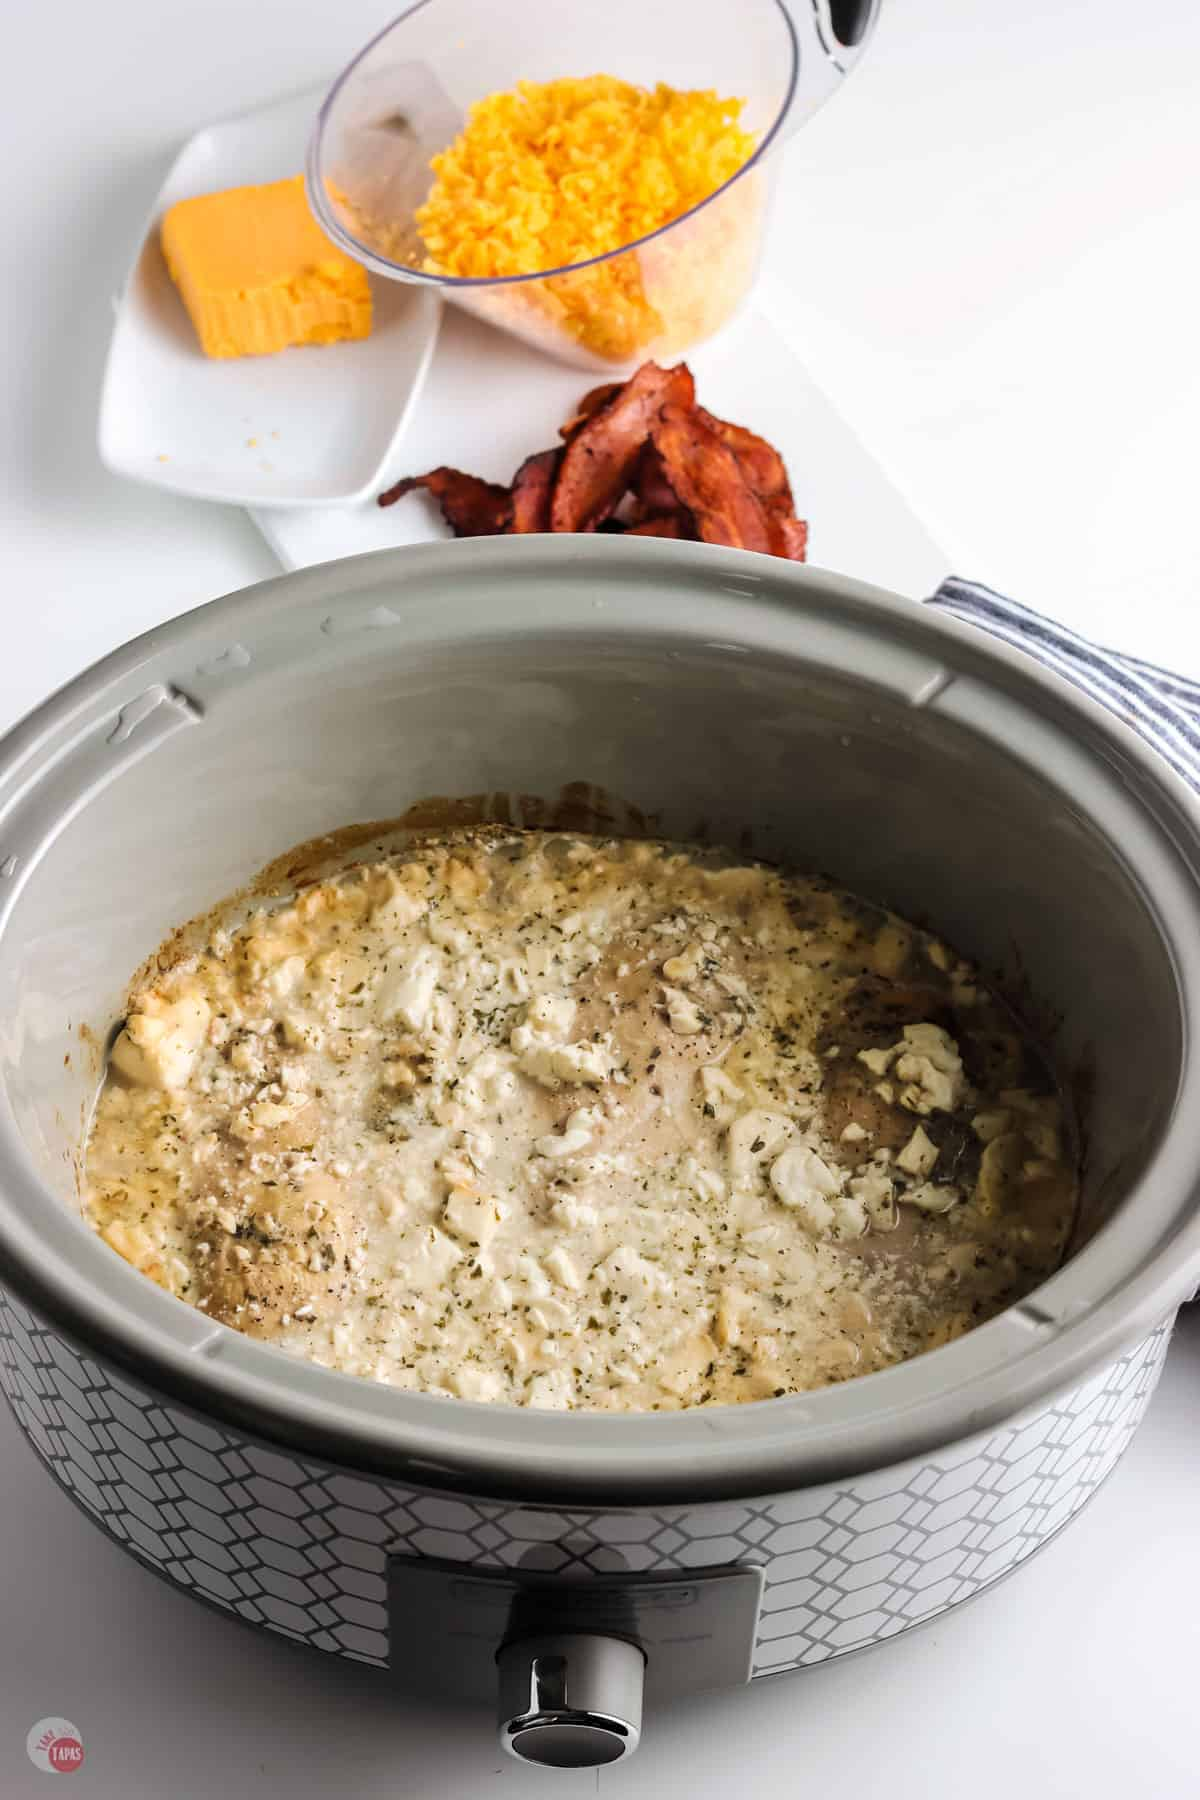 cooked chicken in a crock pot